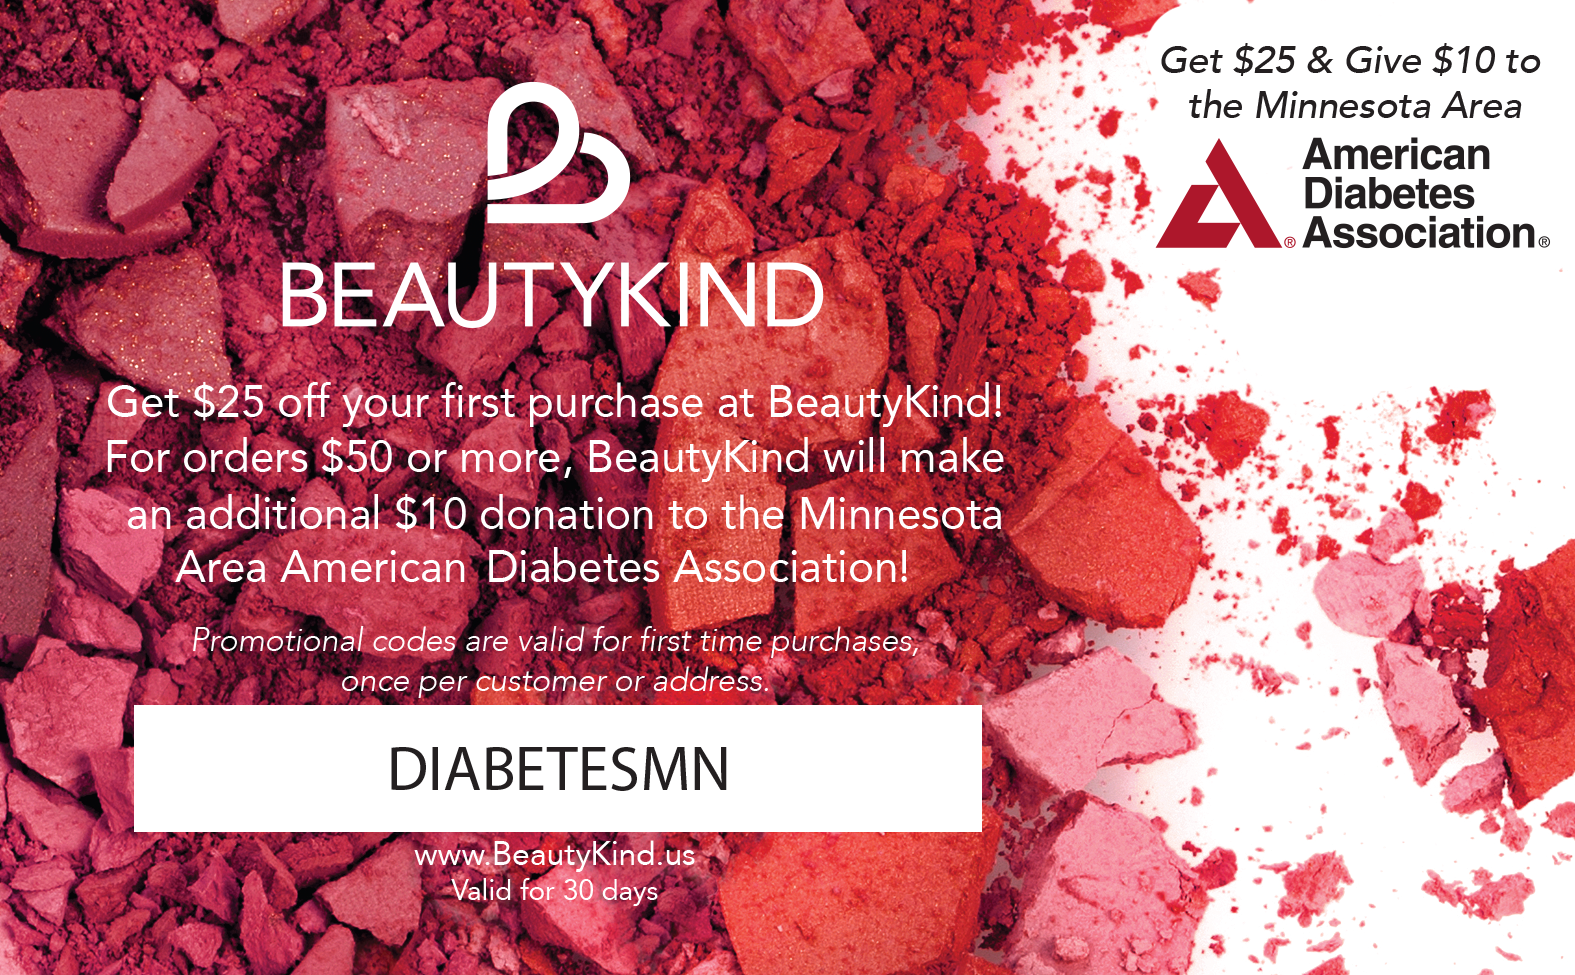 Look #beautiful and help #StopDiabetes! We're partnering with #BeautyKind in the fight against #diabetes!Get $25 OFF your purchase of $50  & BeautyKind will donate $10 to the #AmericanDiabetesAssociation Minnesota! Use the code DIABETESMN at https://beautykind.us/!